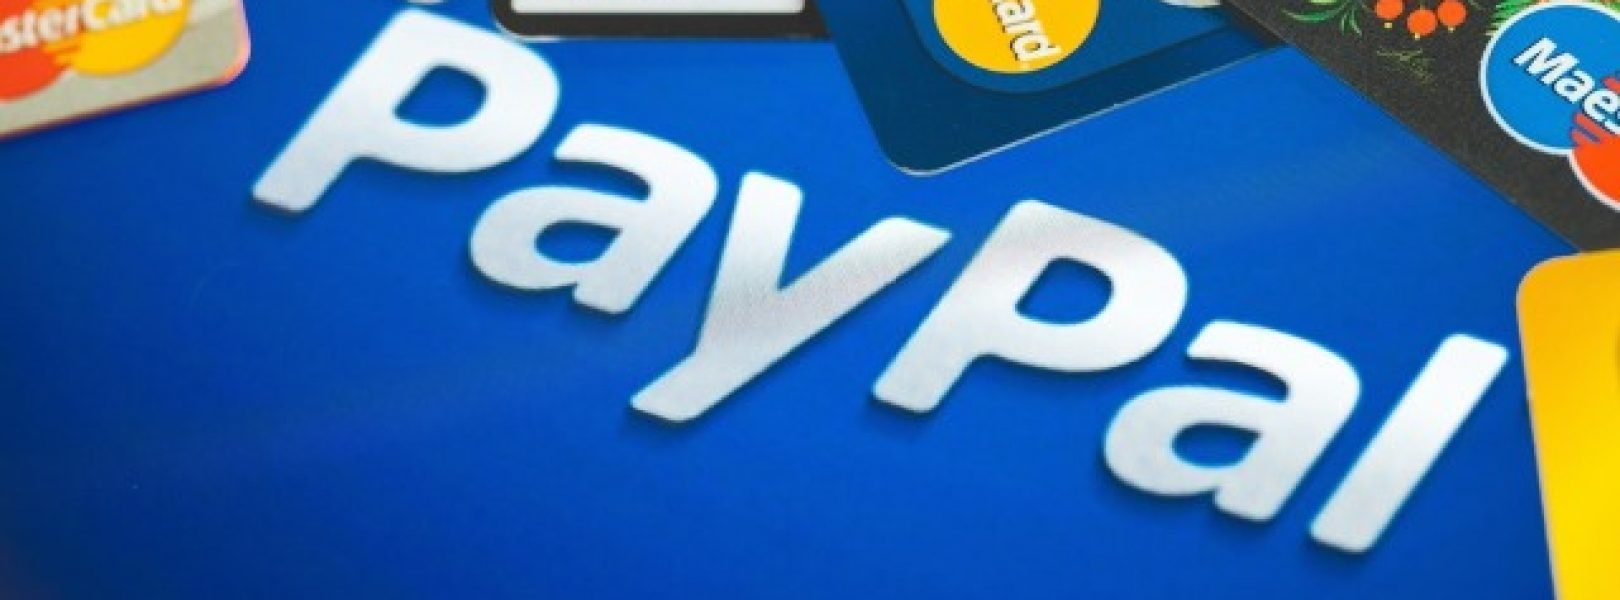 paypal credit card Archives - Product Reviews Australia